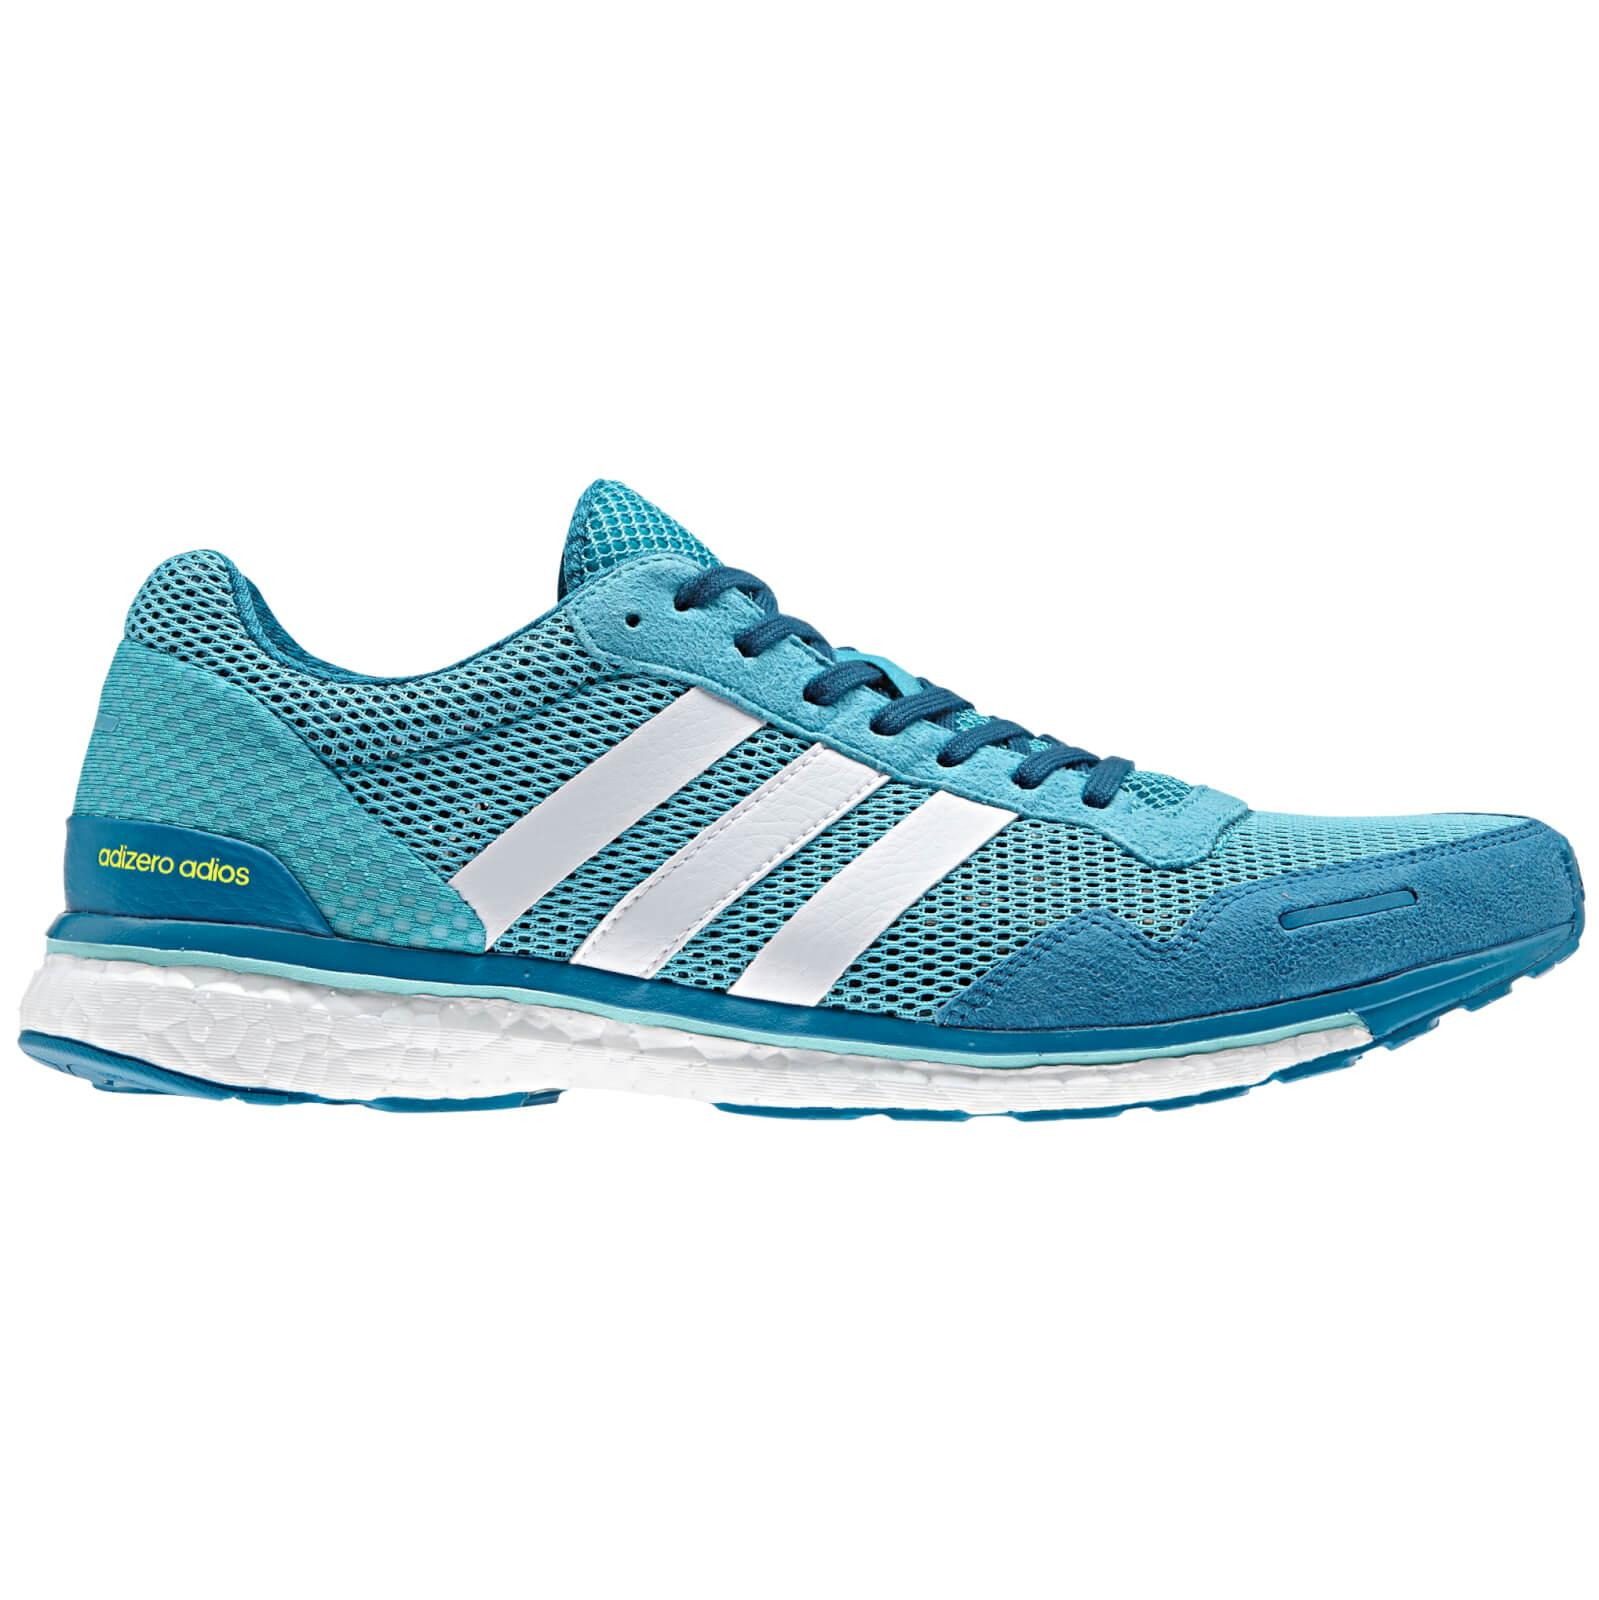 Running Shoes With The Most Forefoot Cushioning